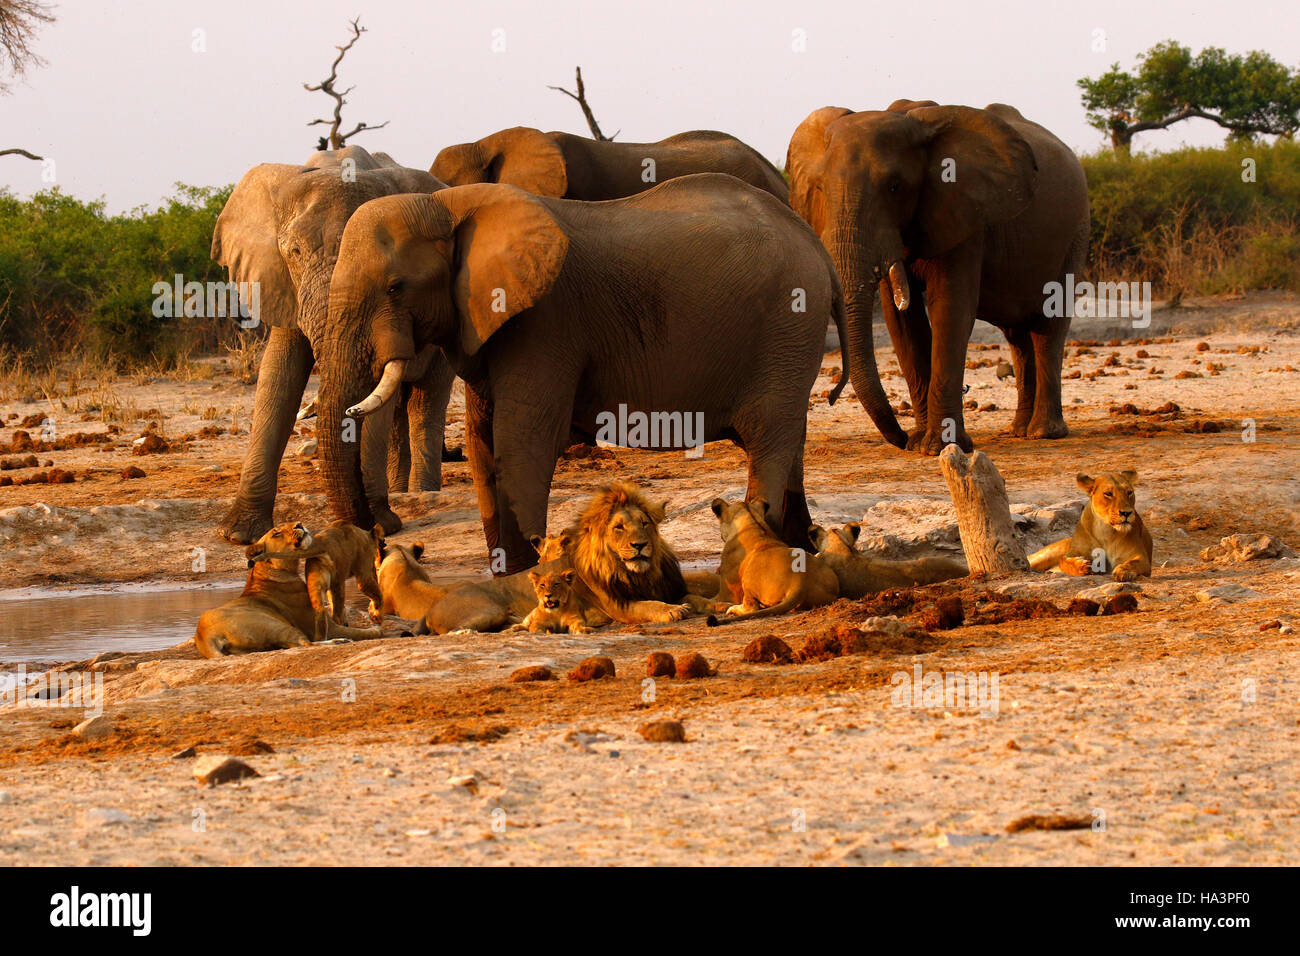 a pride of lions very close to a herd of elephants during a drought